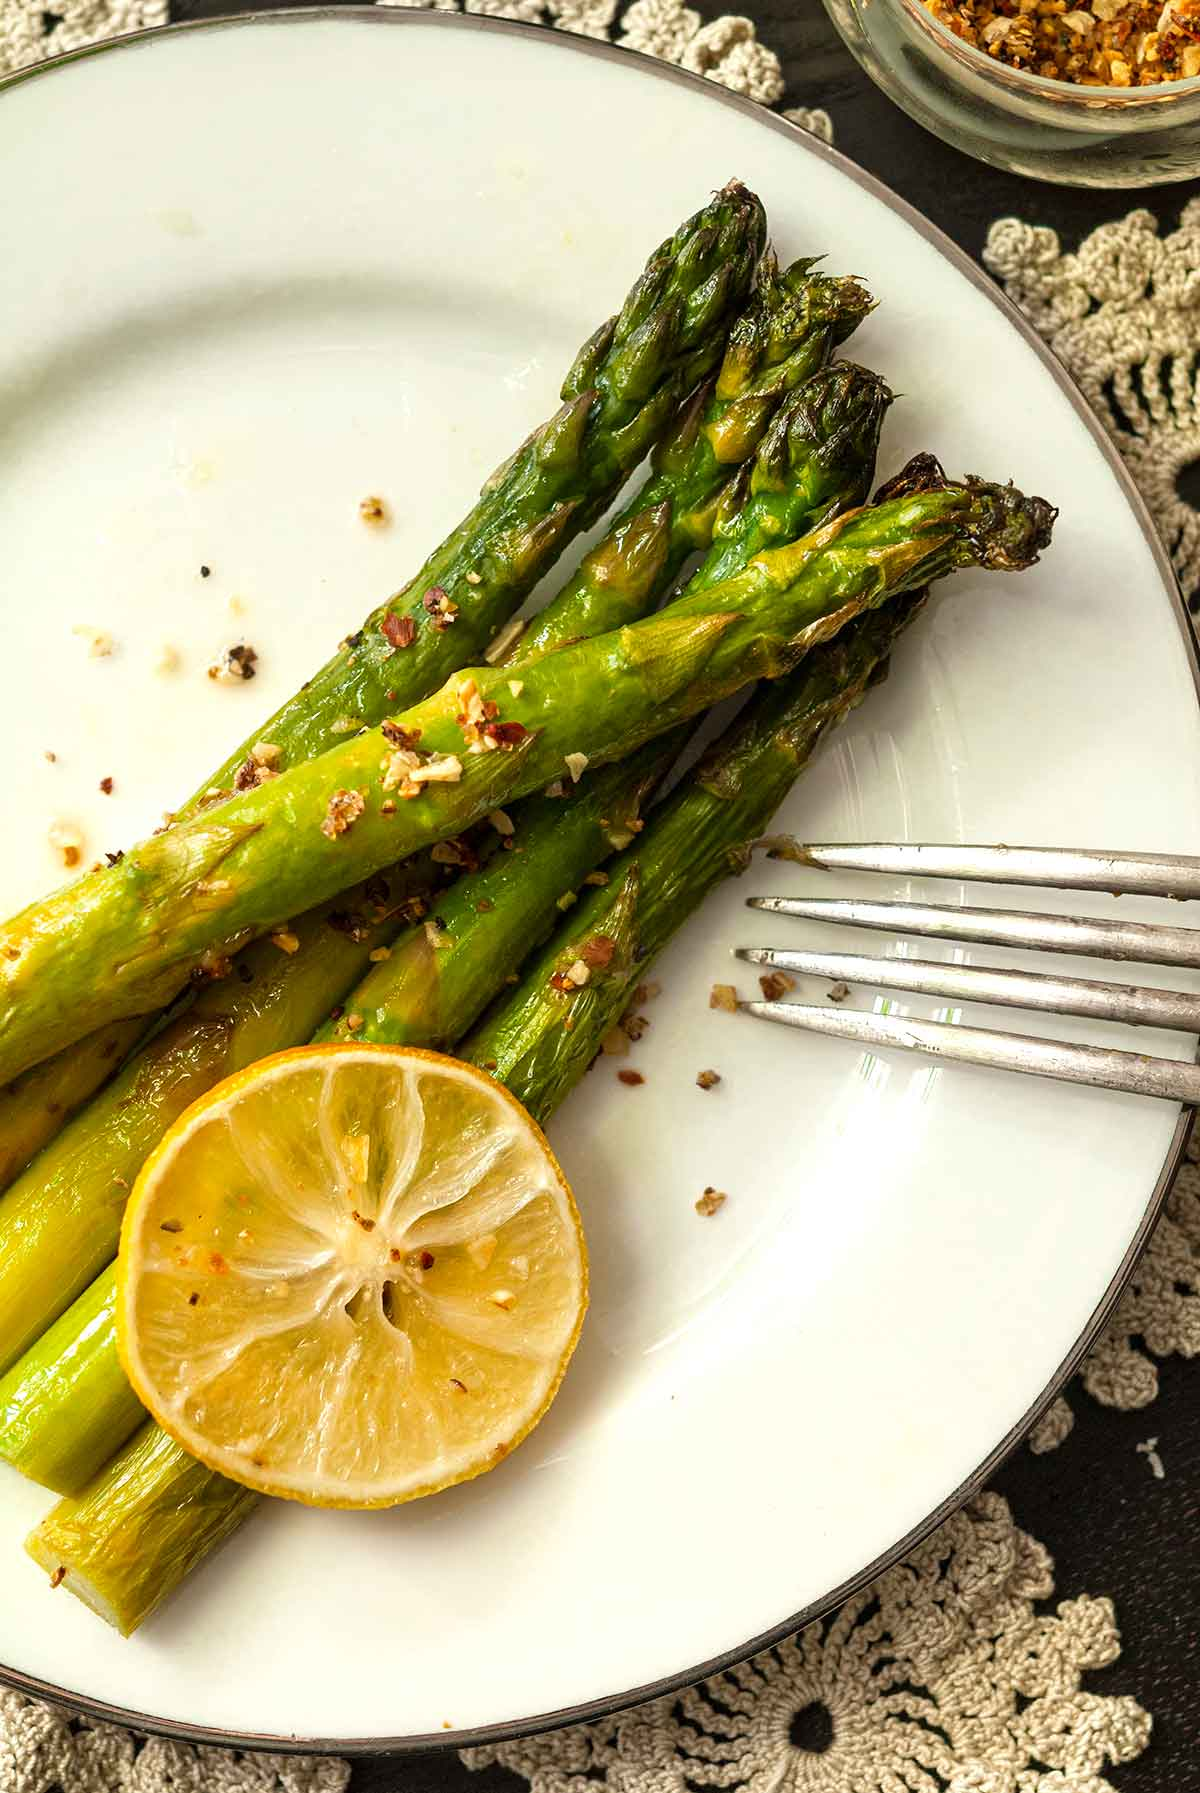 5 asparagus stalks on a plate with a fork, sprinkled with lemon pepper and garnished with a lemon slice.